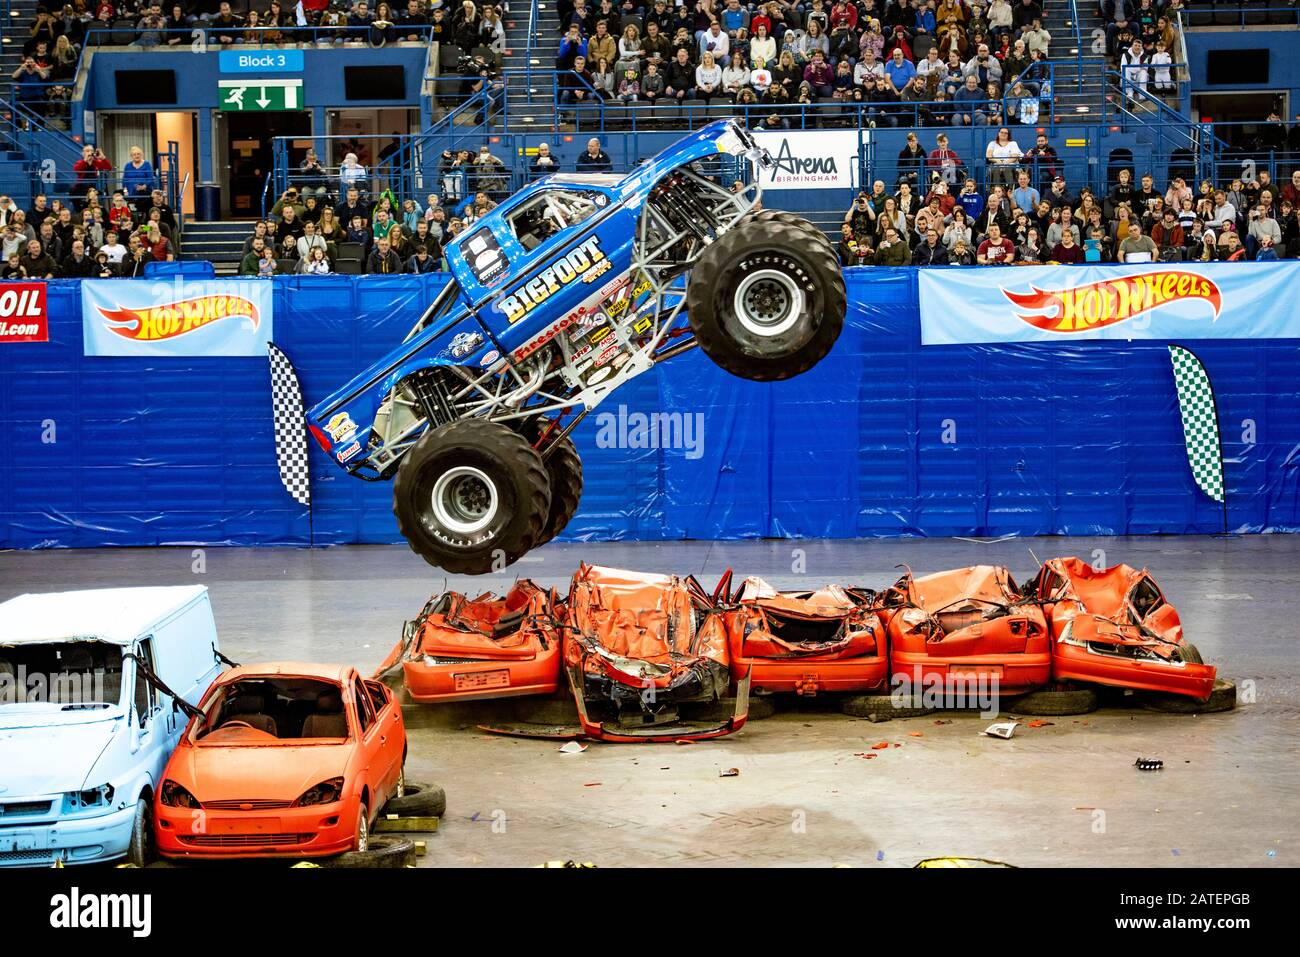 Birmingham Uk 01st February 2020 Spectacular Live Show Featuring Some Of The Greatest Monster Truck Drivers